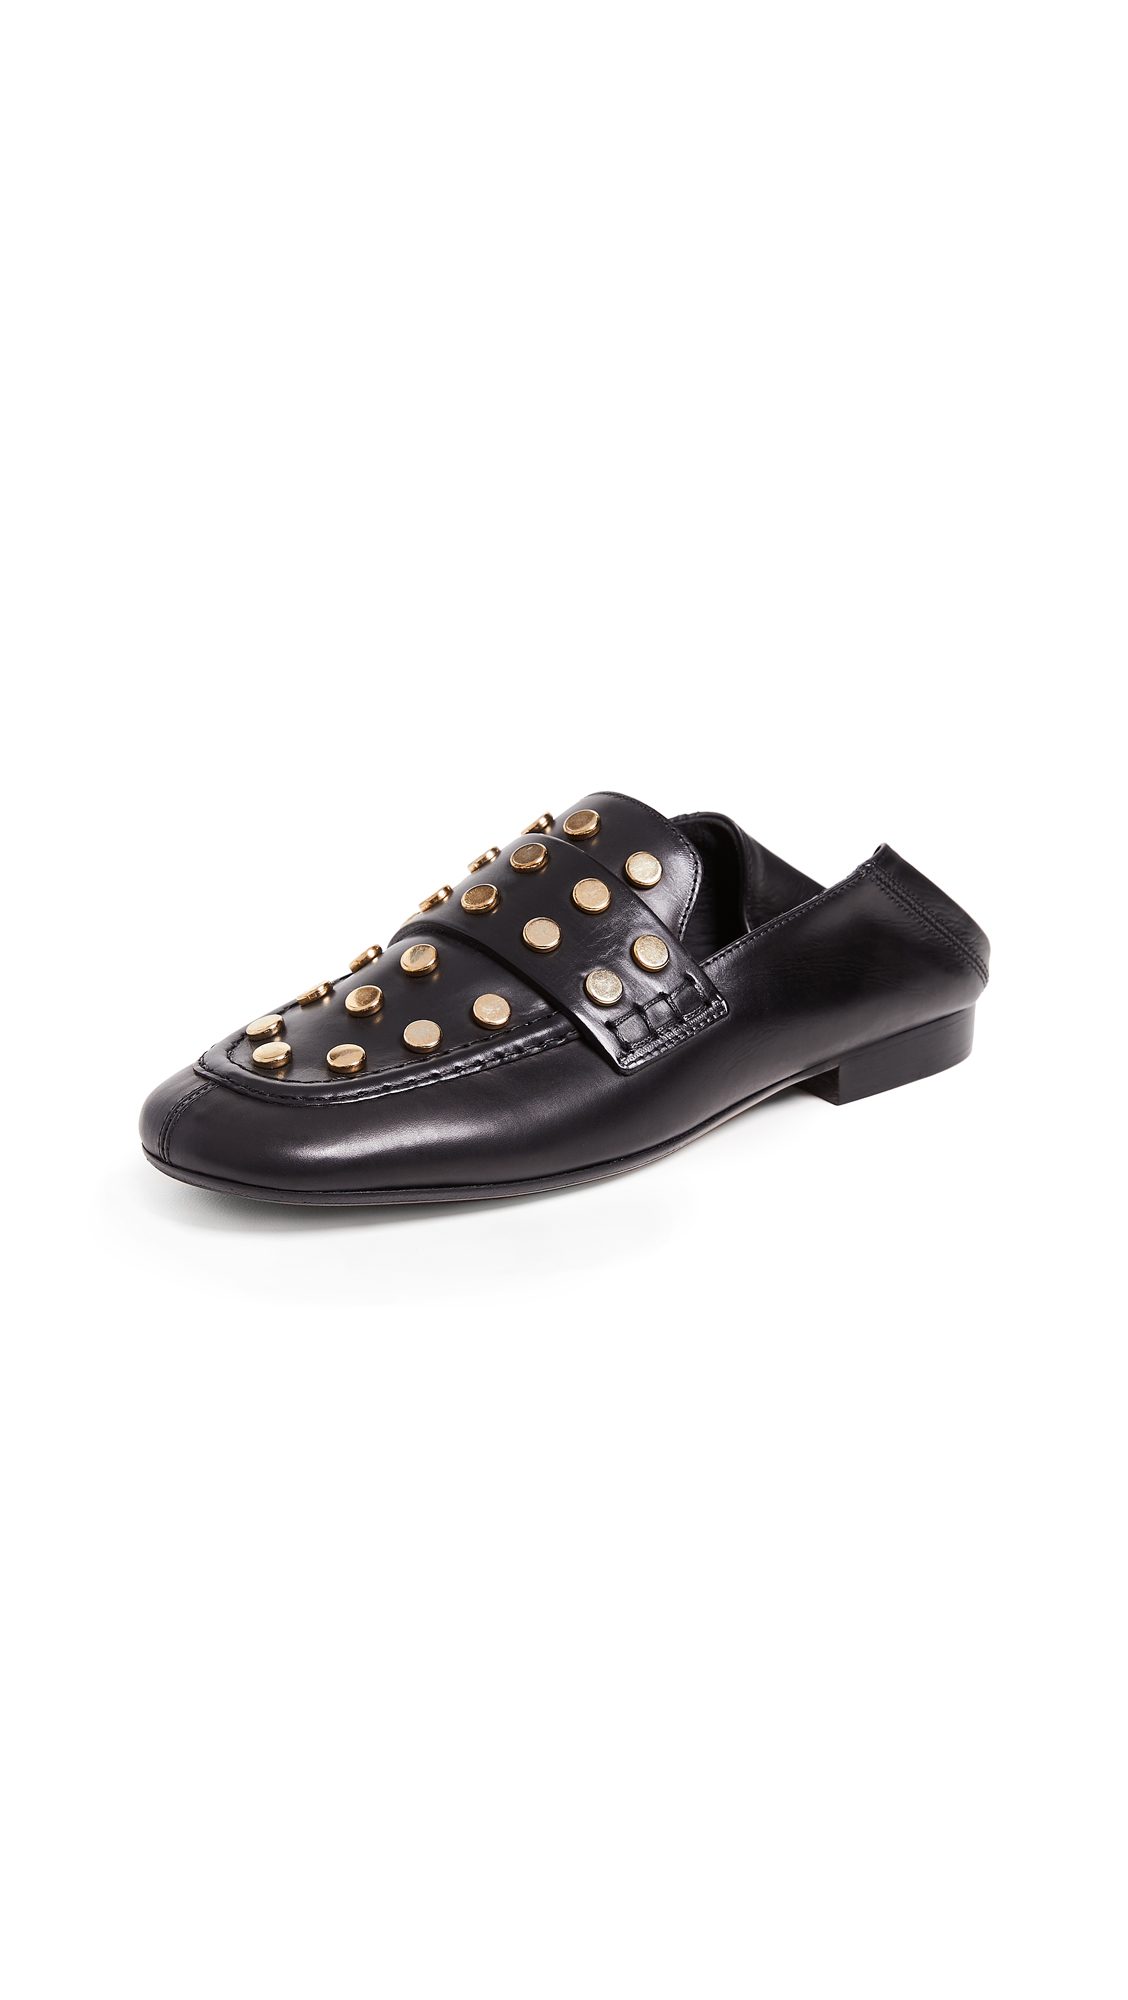 Isabel Marant Feenie Convertible Loafers - Black/Dore